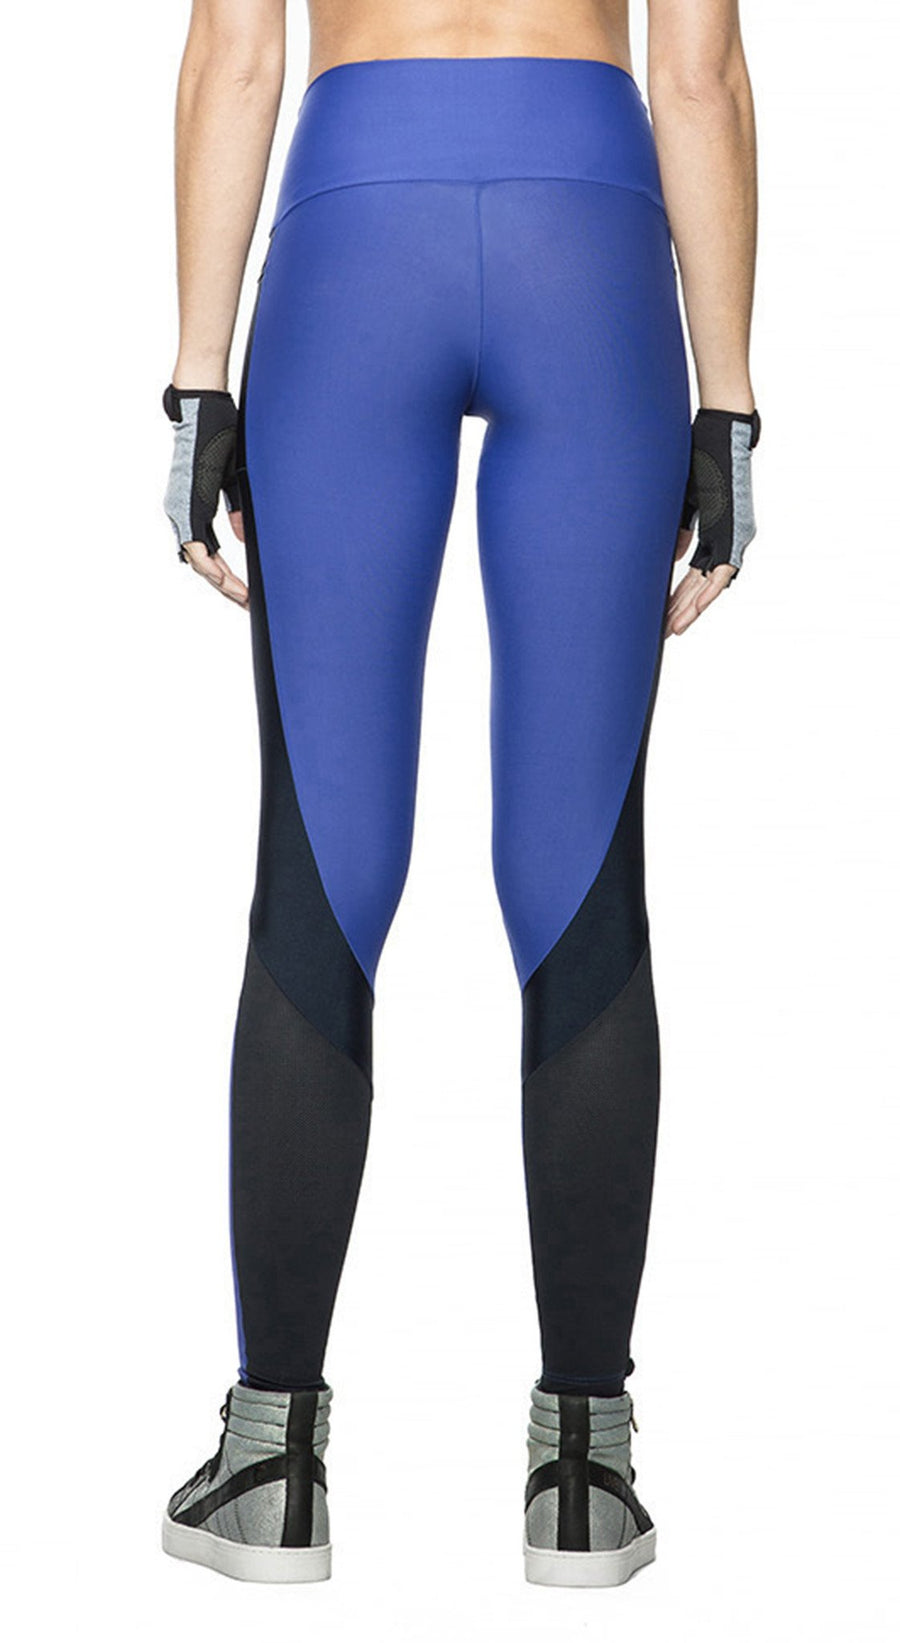 Yoga Pants - Super Style Leggings Royal Blue